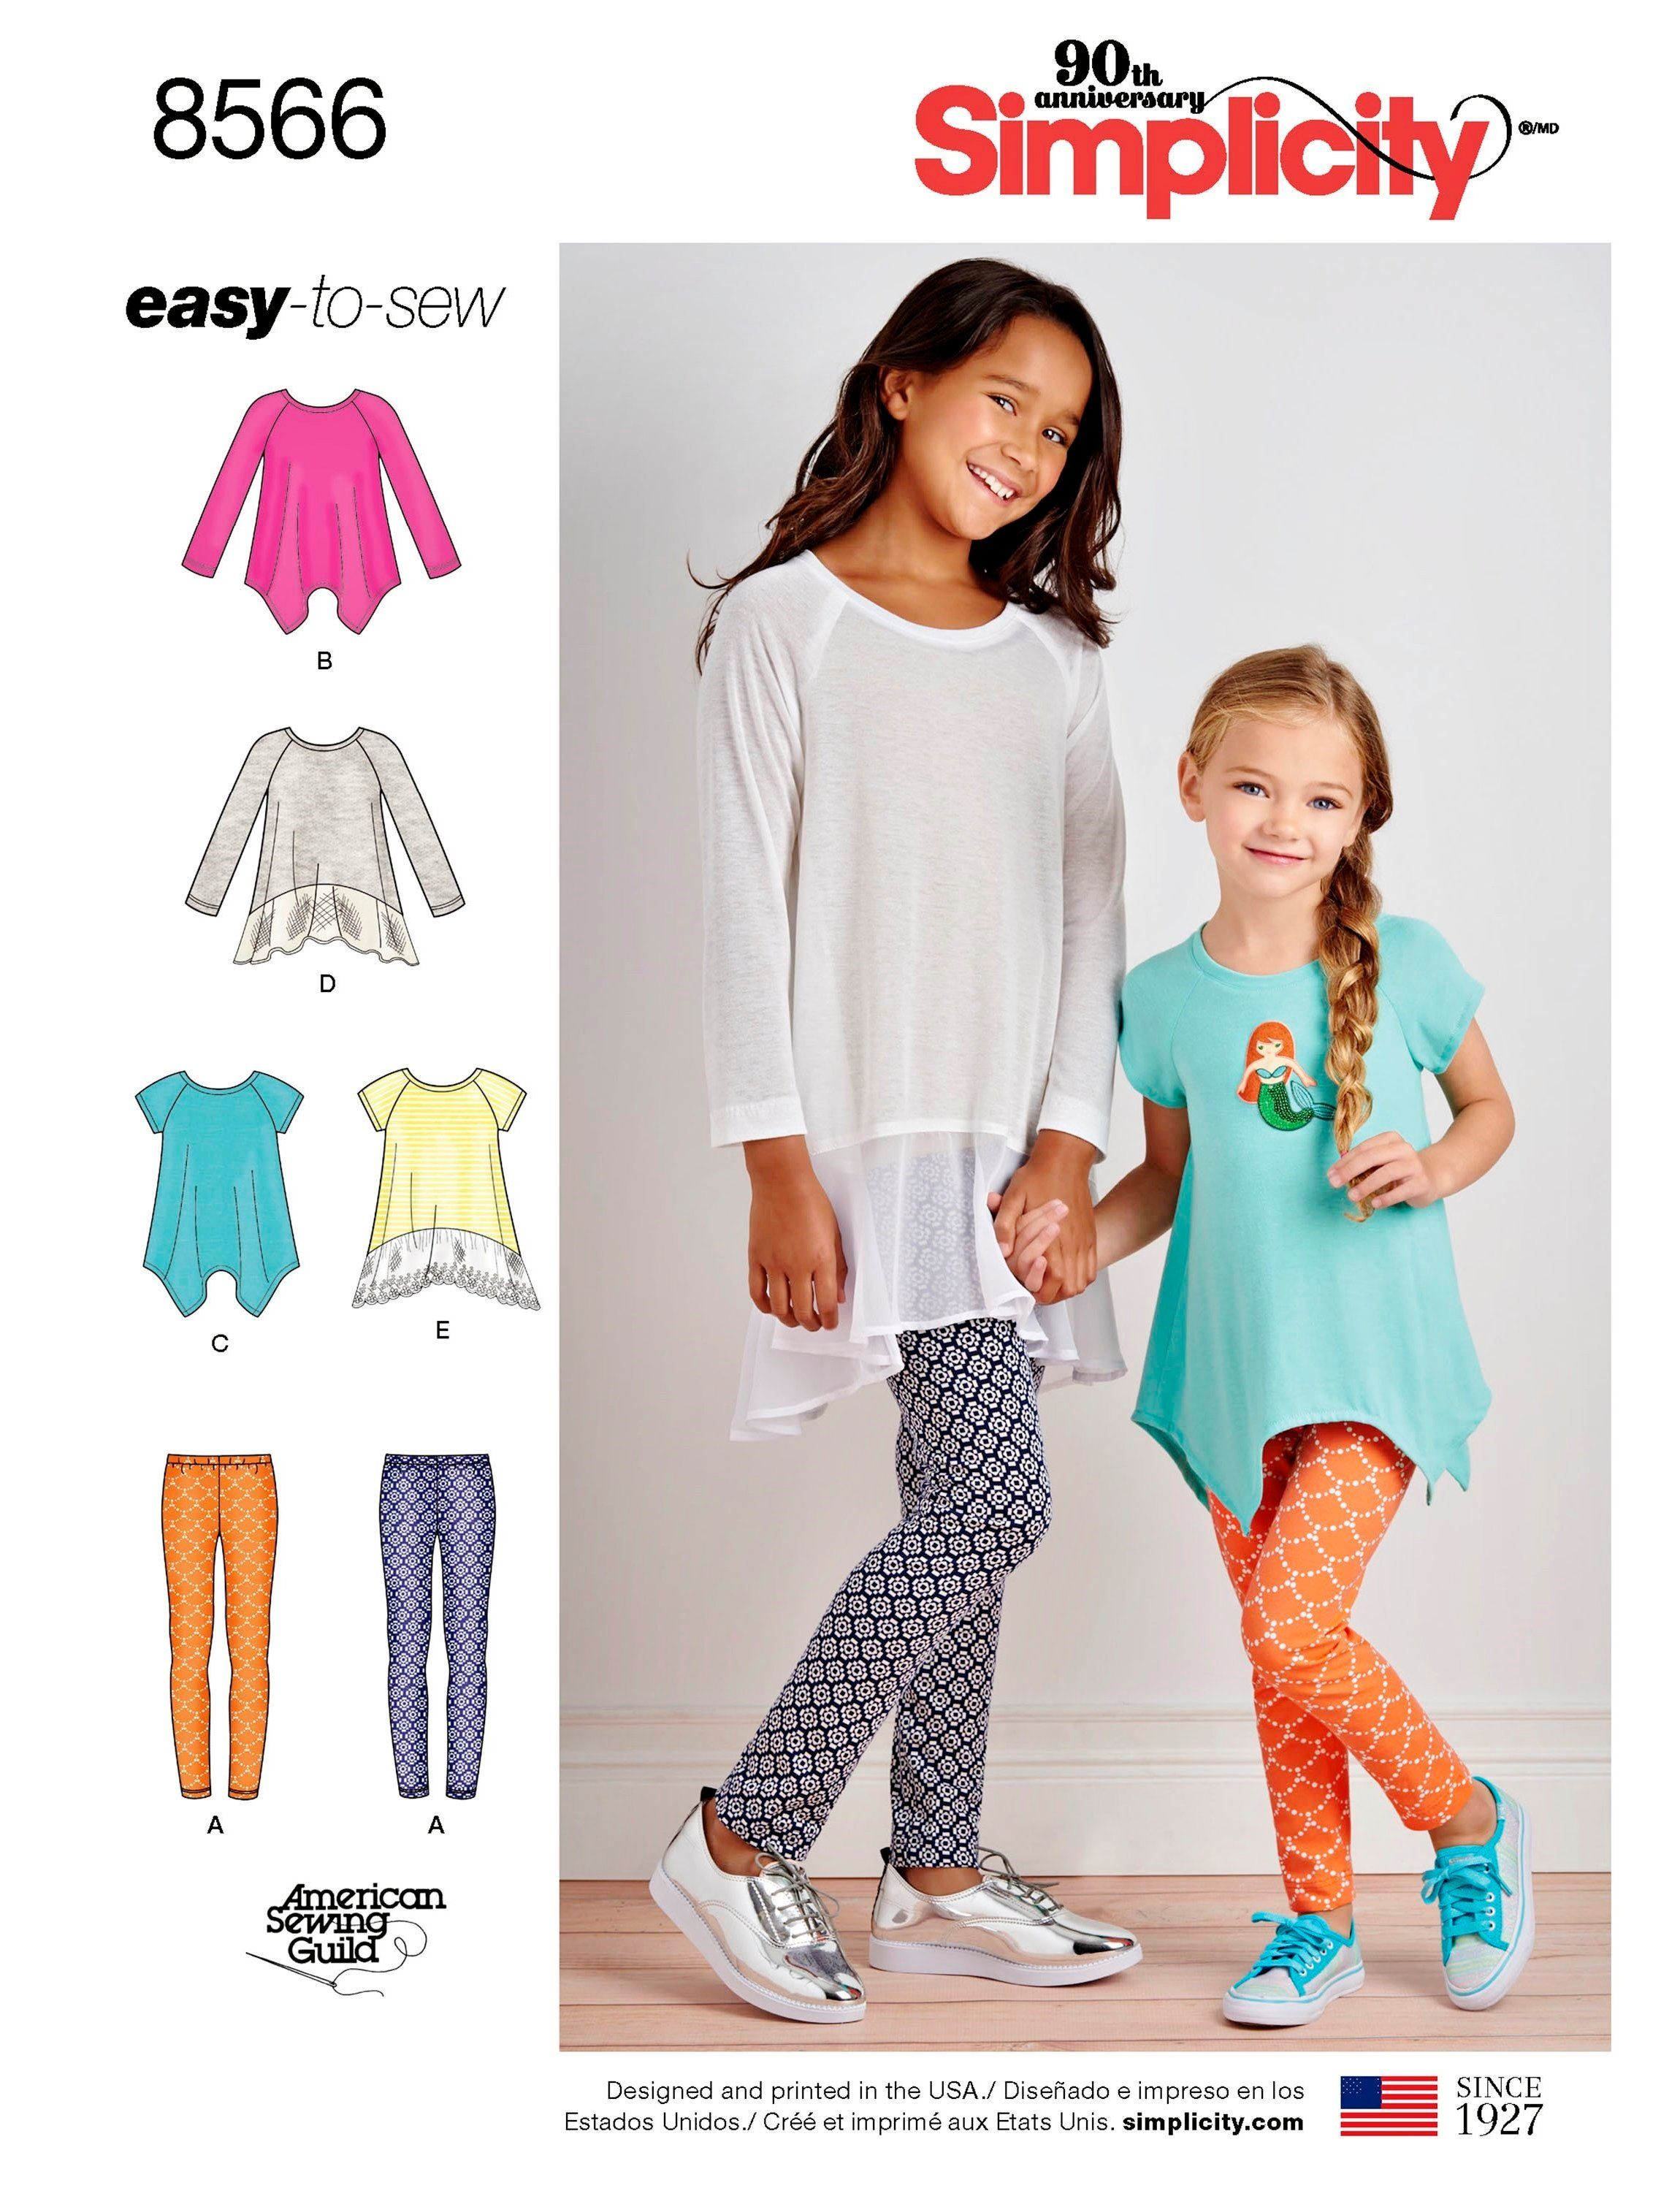 6d67cbb2302 Sewing Pattern Girls' Tunic Top and Leggings Pattern, Easy to Sew Girl's  Leggings and Loose Fit Top Pattern, Simplicity Sewing Pattern 8566 by ...